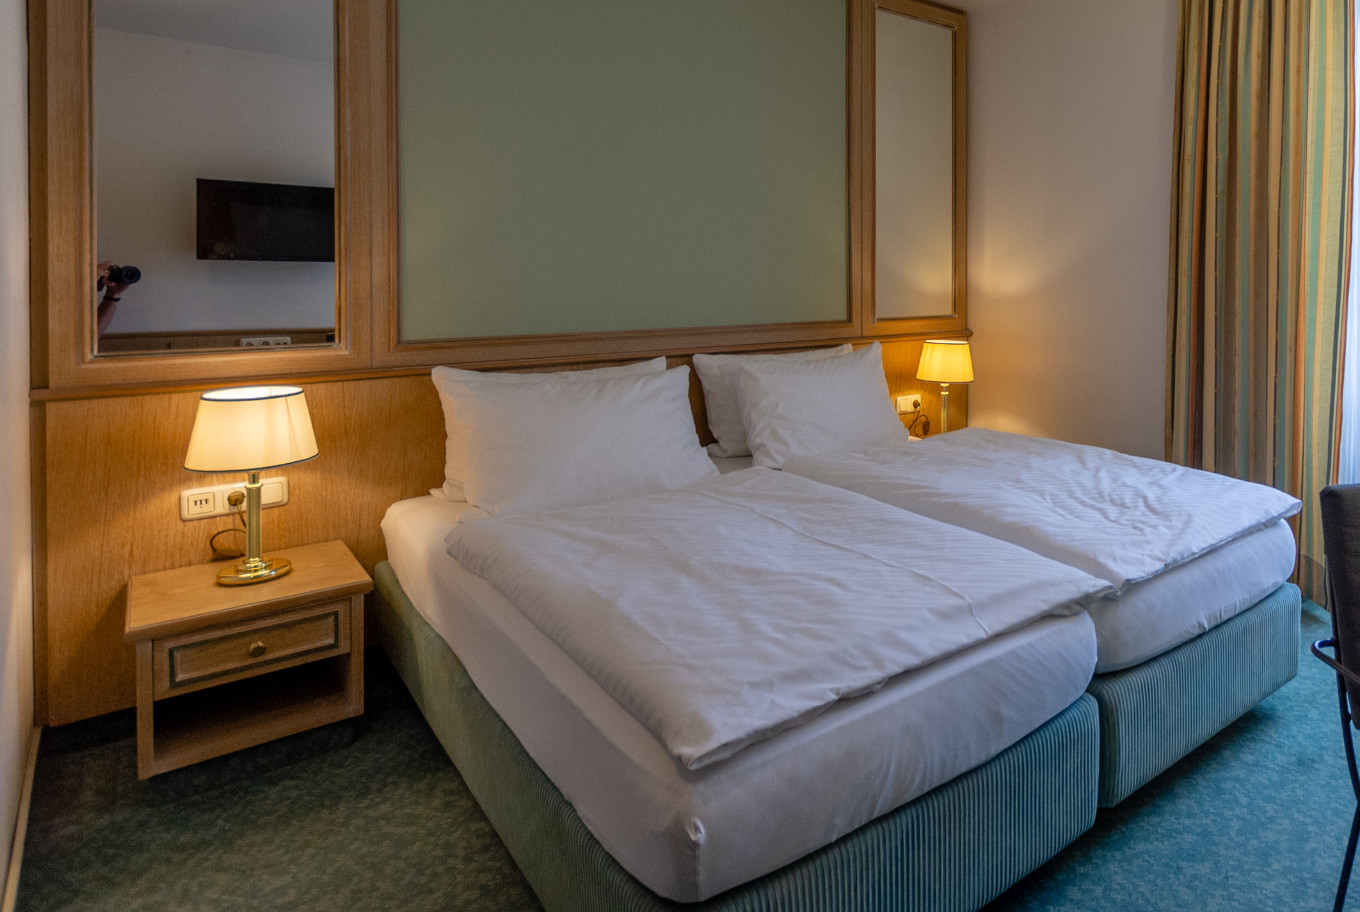 Sleep comfortably in our Augsburg Hotel.